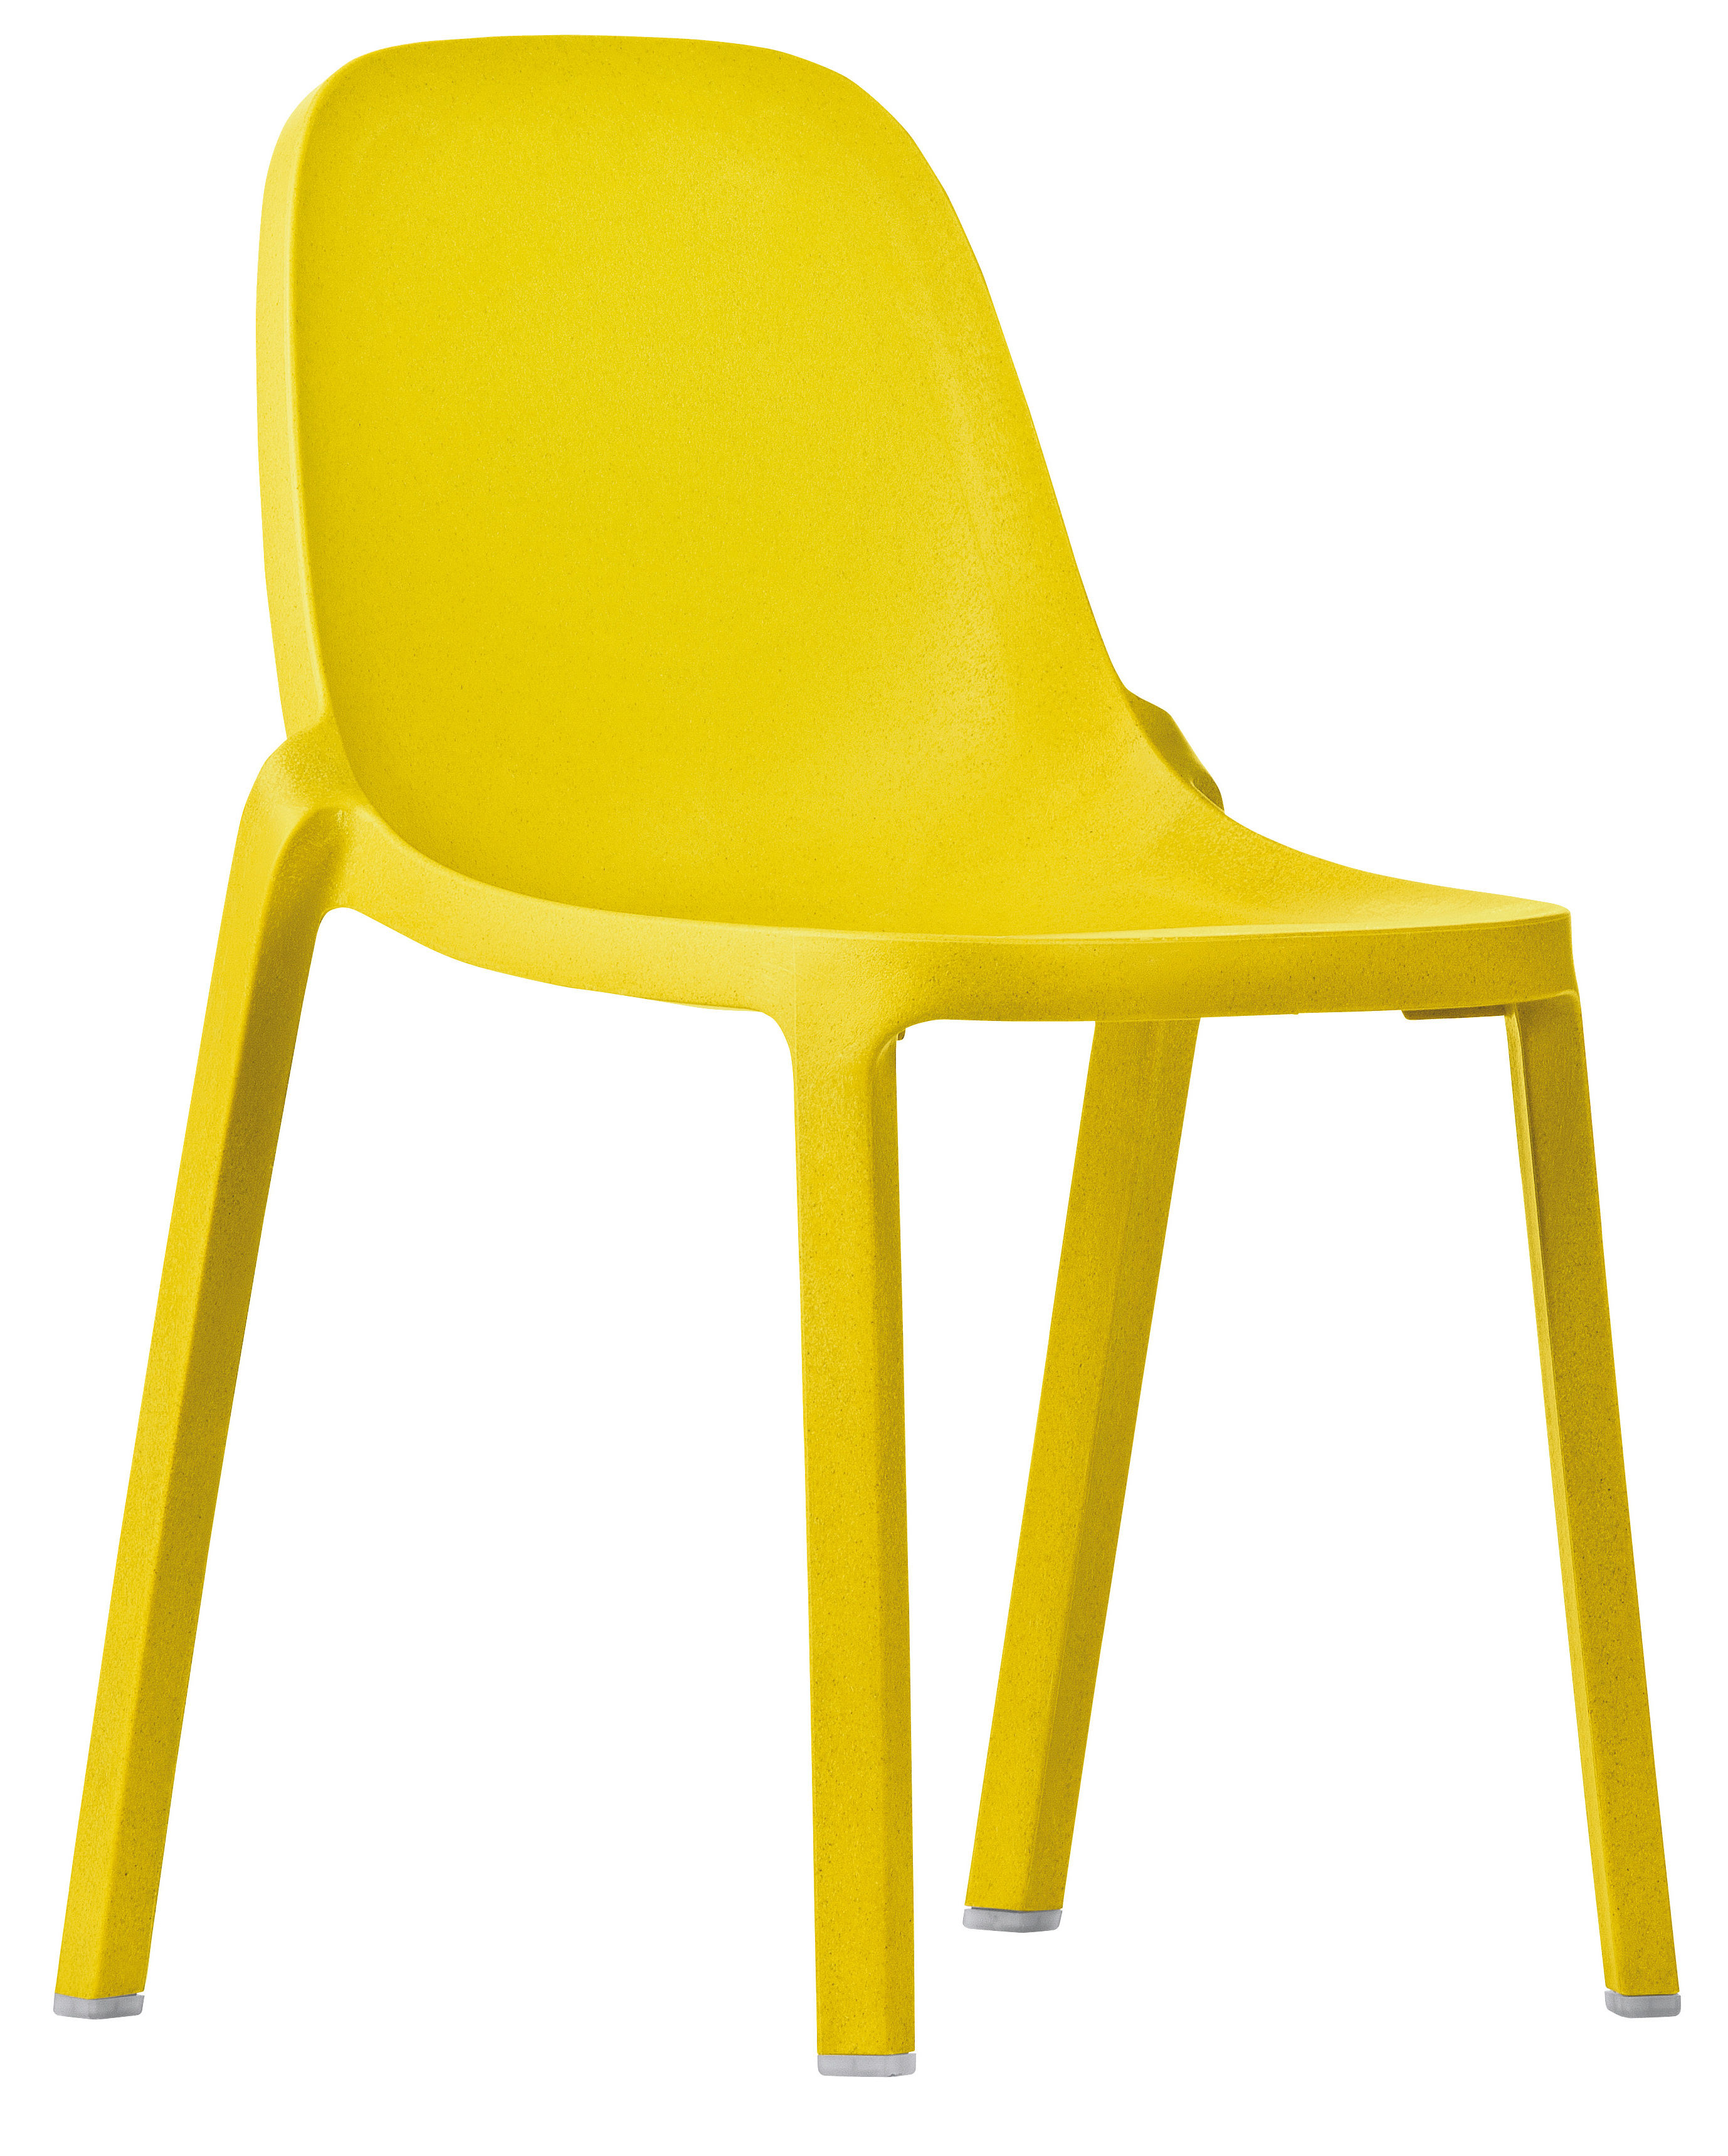 Furniture - Chairs - Broom Stackable chair - Recycled plastic by Emeco - Yellow - Matériau composite recyclé